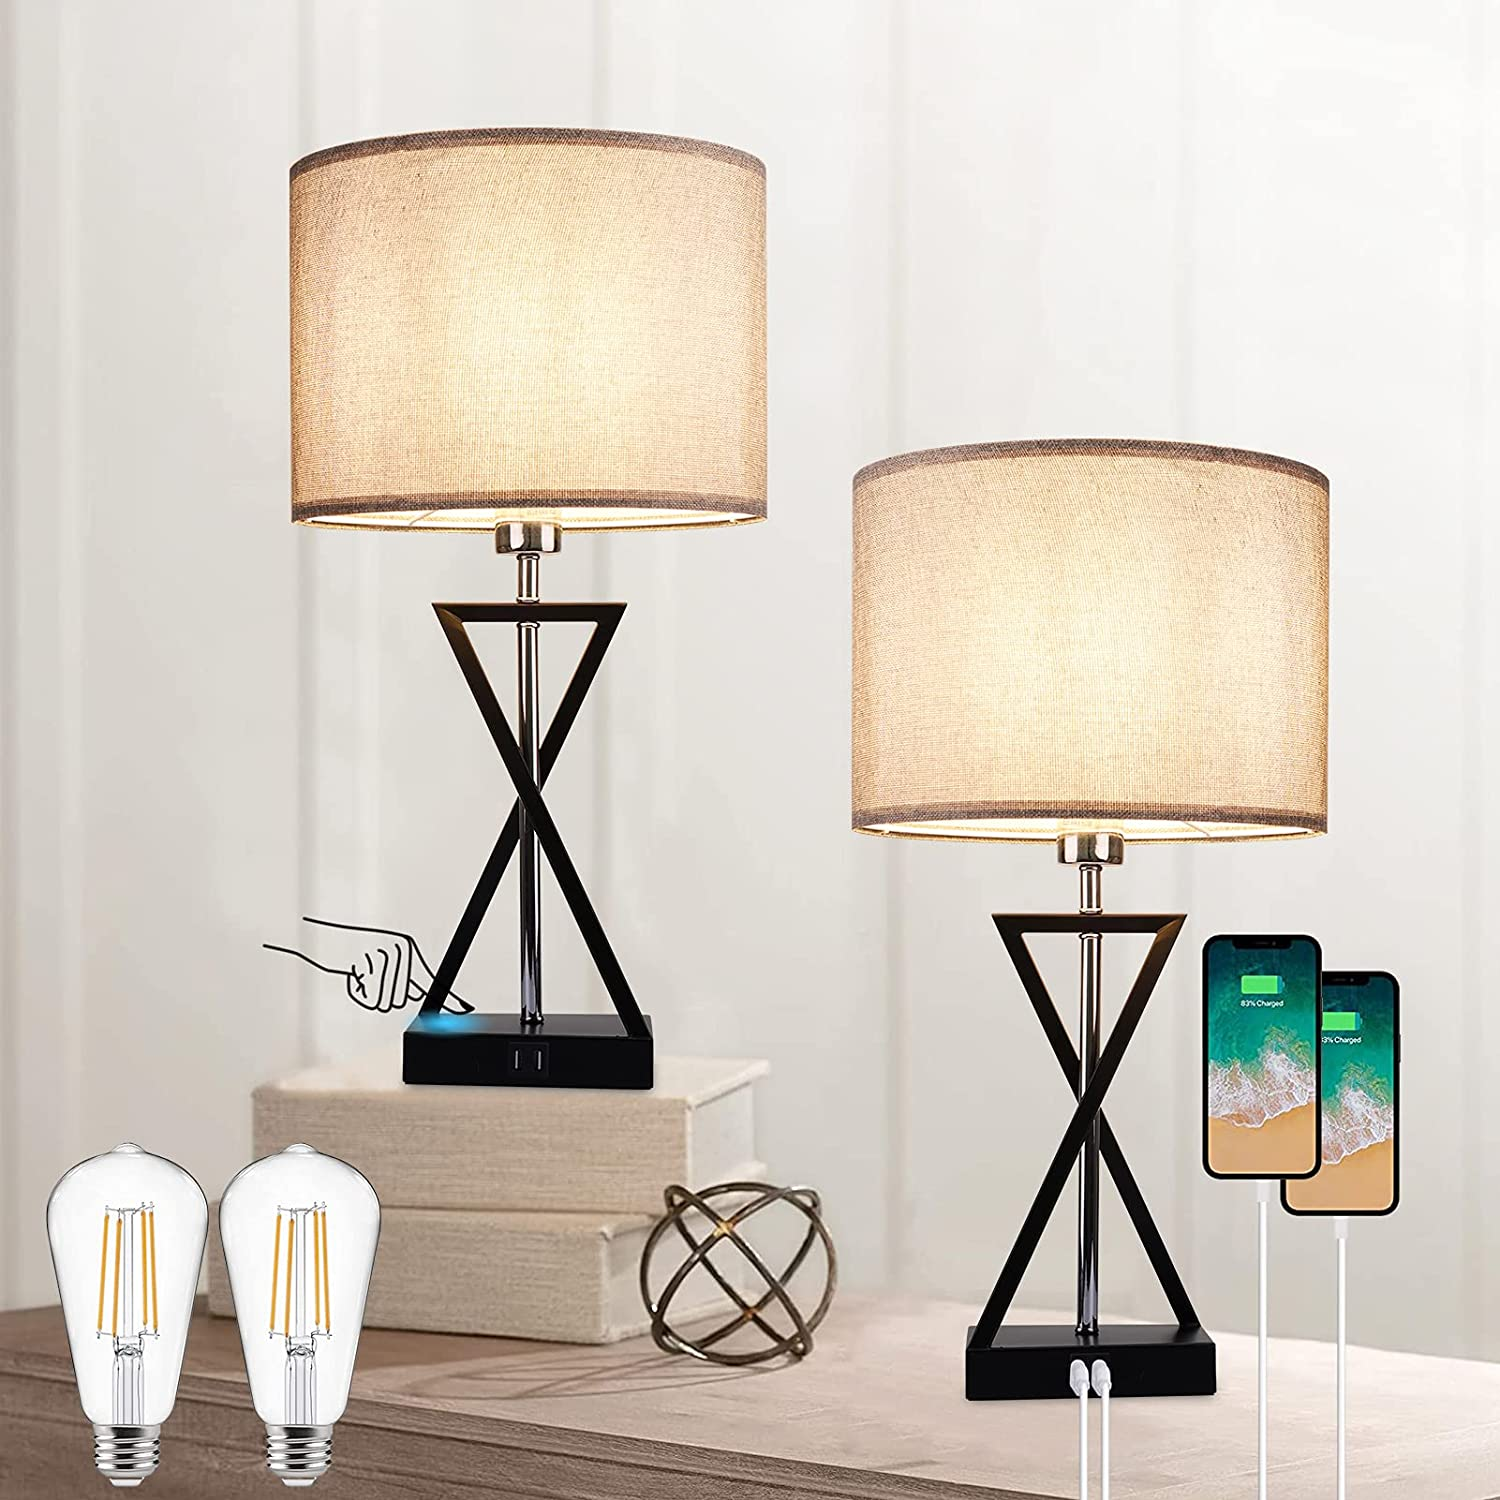 Ralbay Set of 2 Desk Lamp with USB Charging Port 3-Way Dimmable Touch Control Nightstand Lamp for Bedroom Bedside Table, Modern Table Lamp for Living Room, Home Office